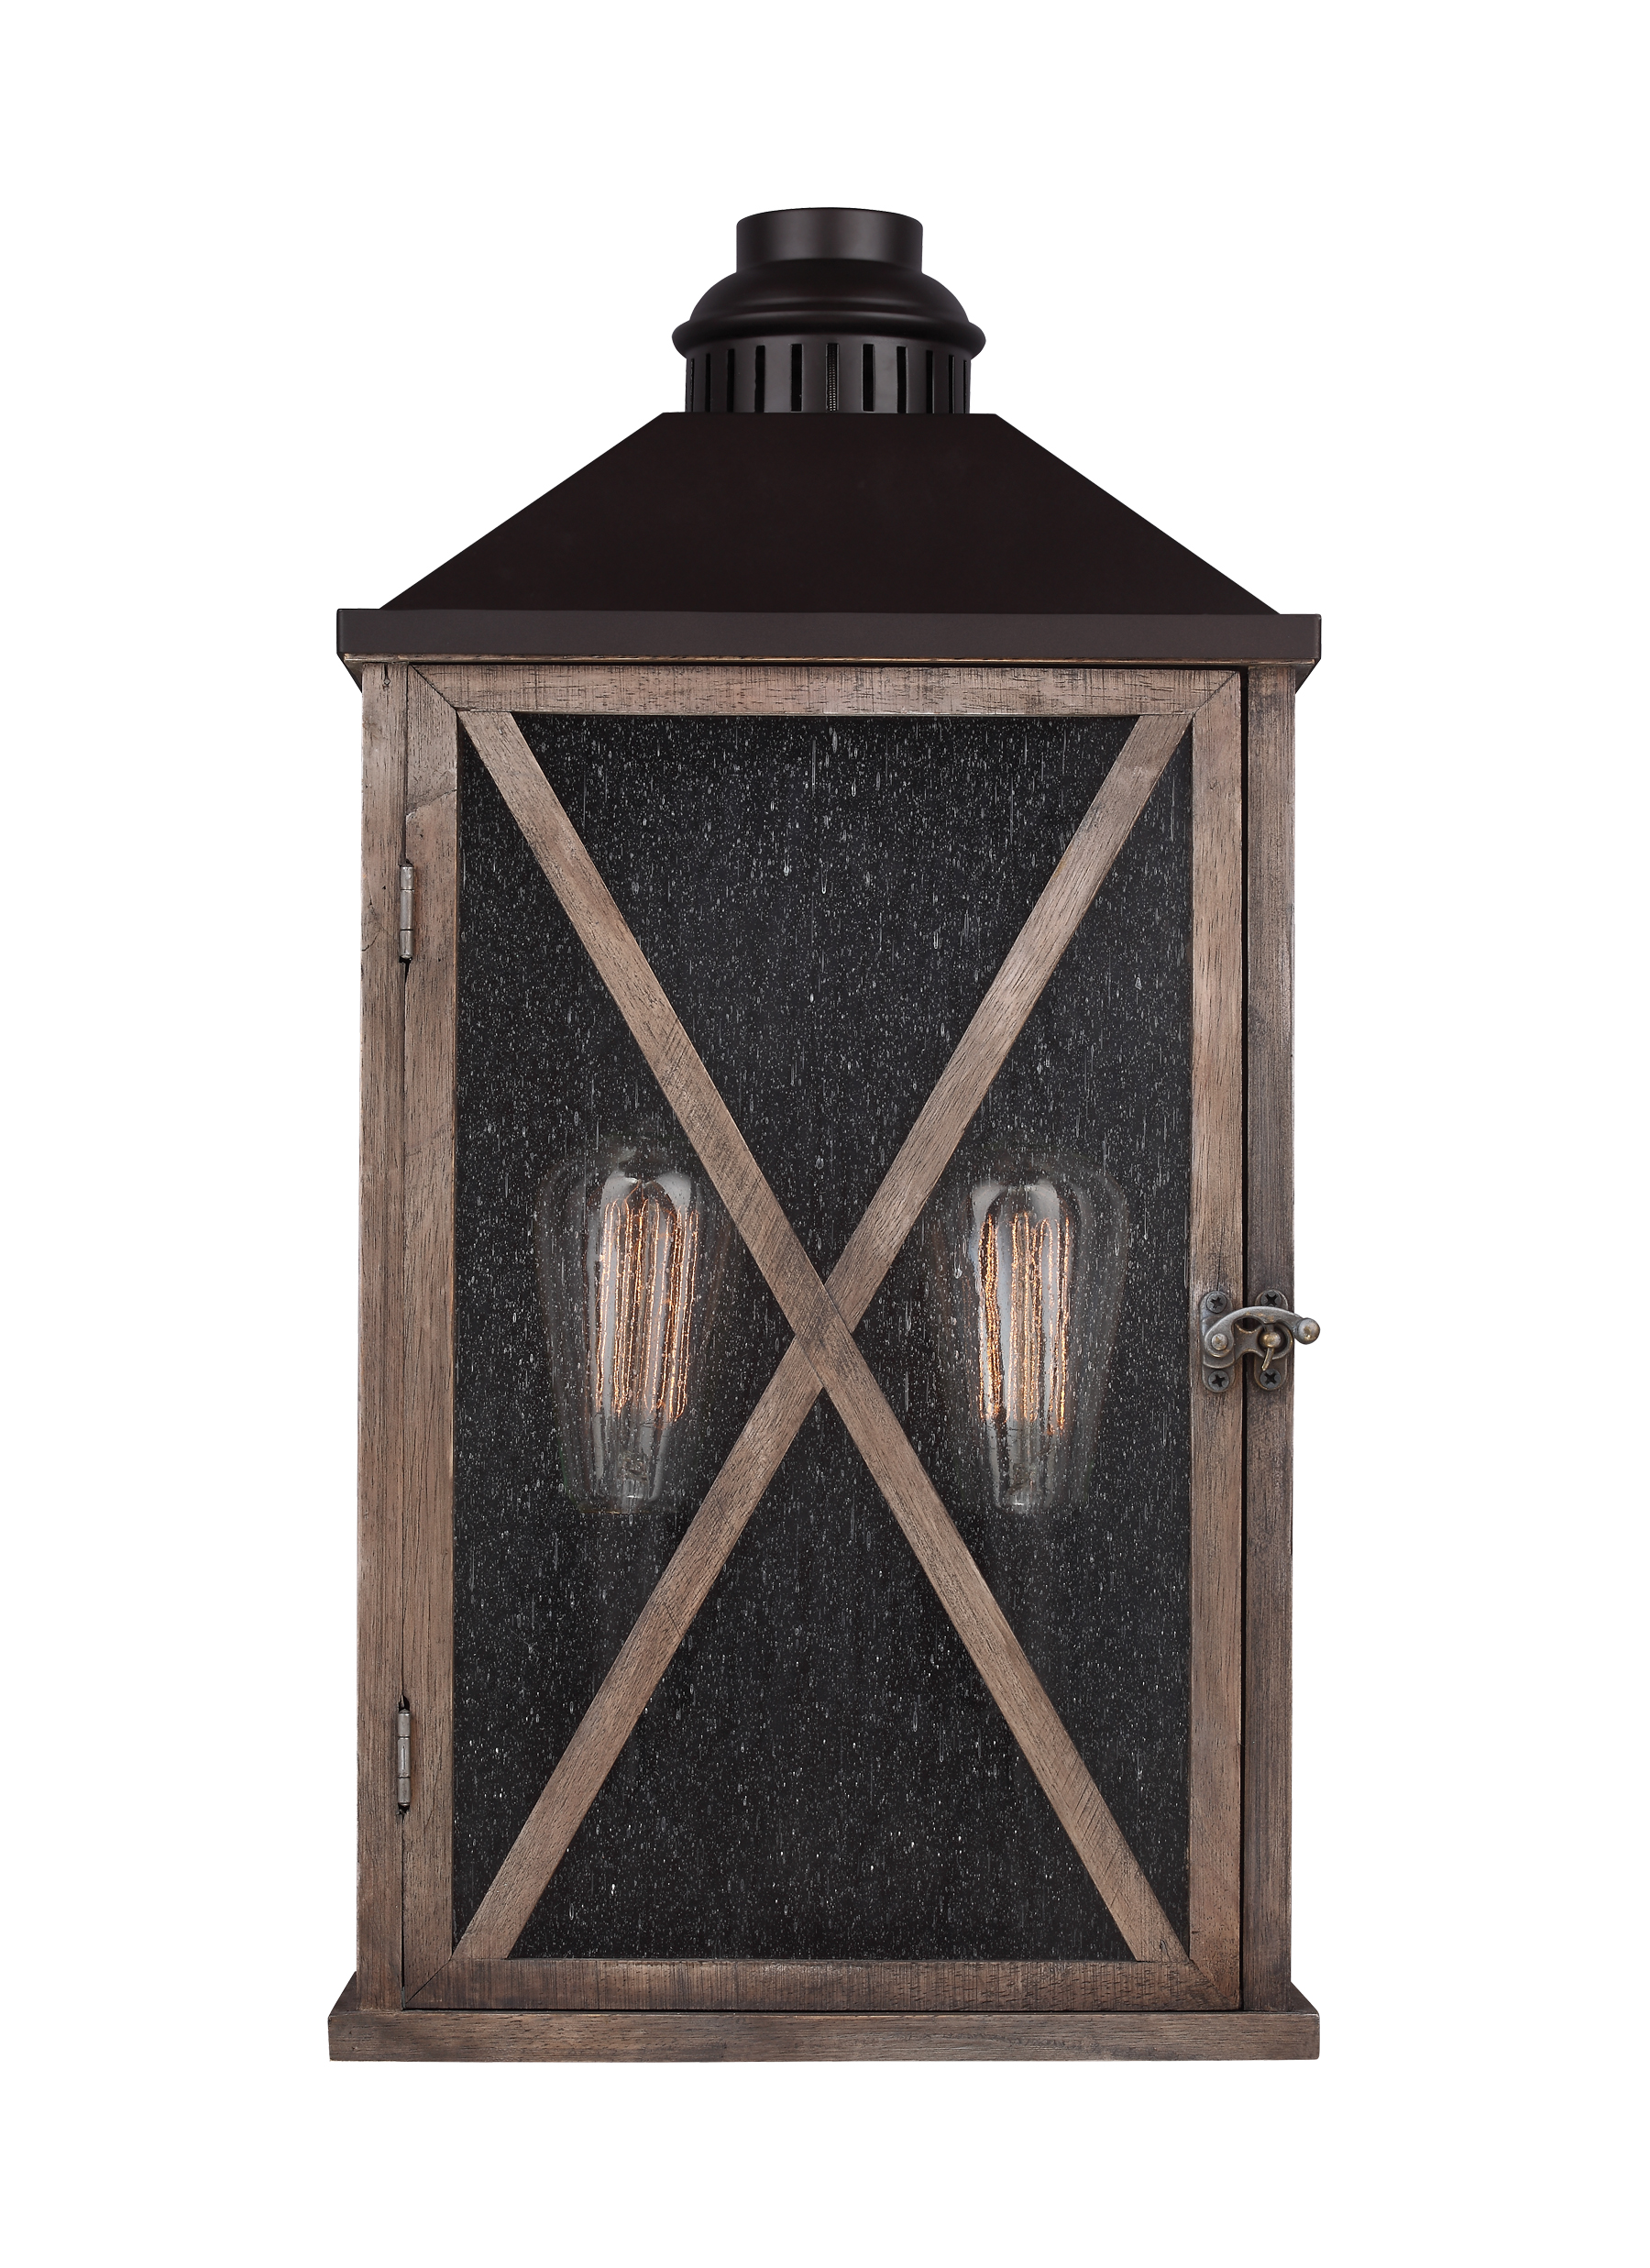 buy online bbd0a 566dd OL17004DWO/ORB, 2 - Light Outdoor Wall Sconce,Dark Weathered ...